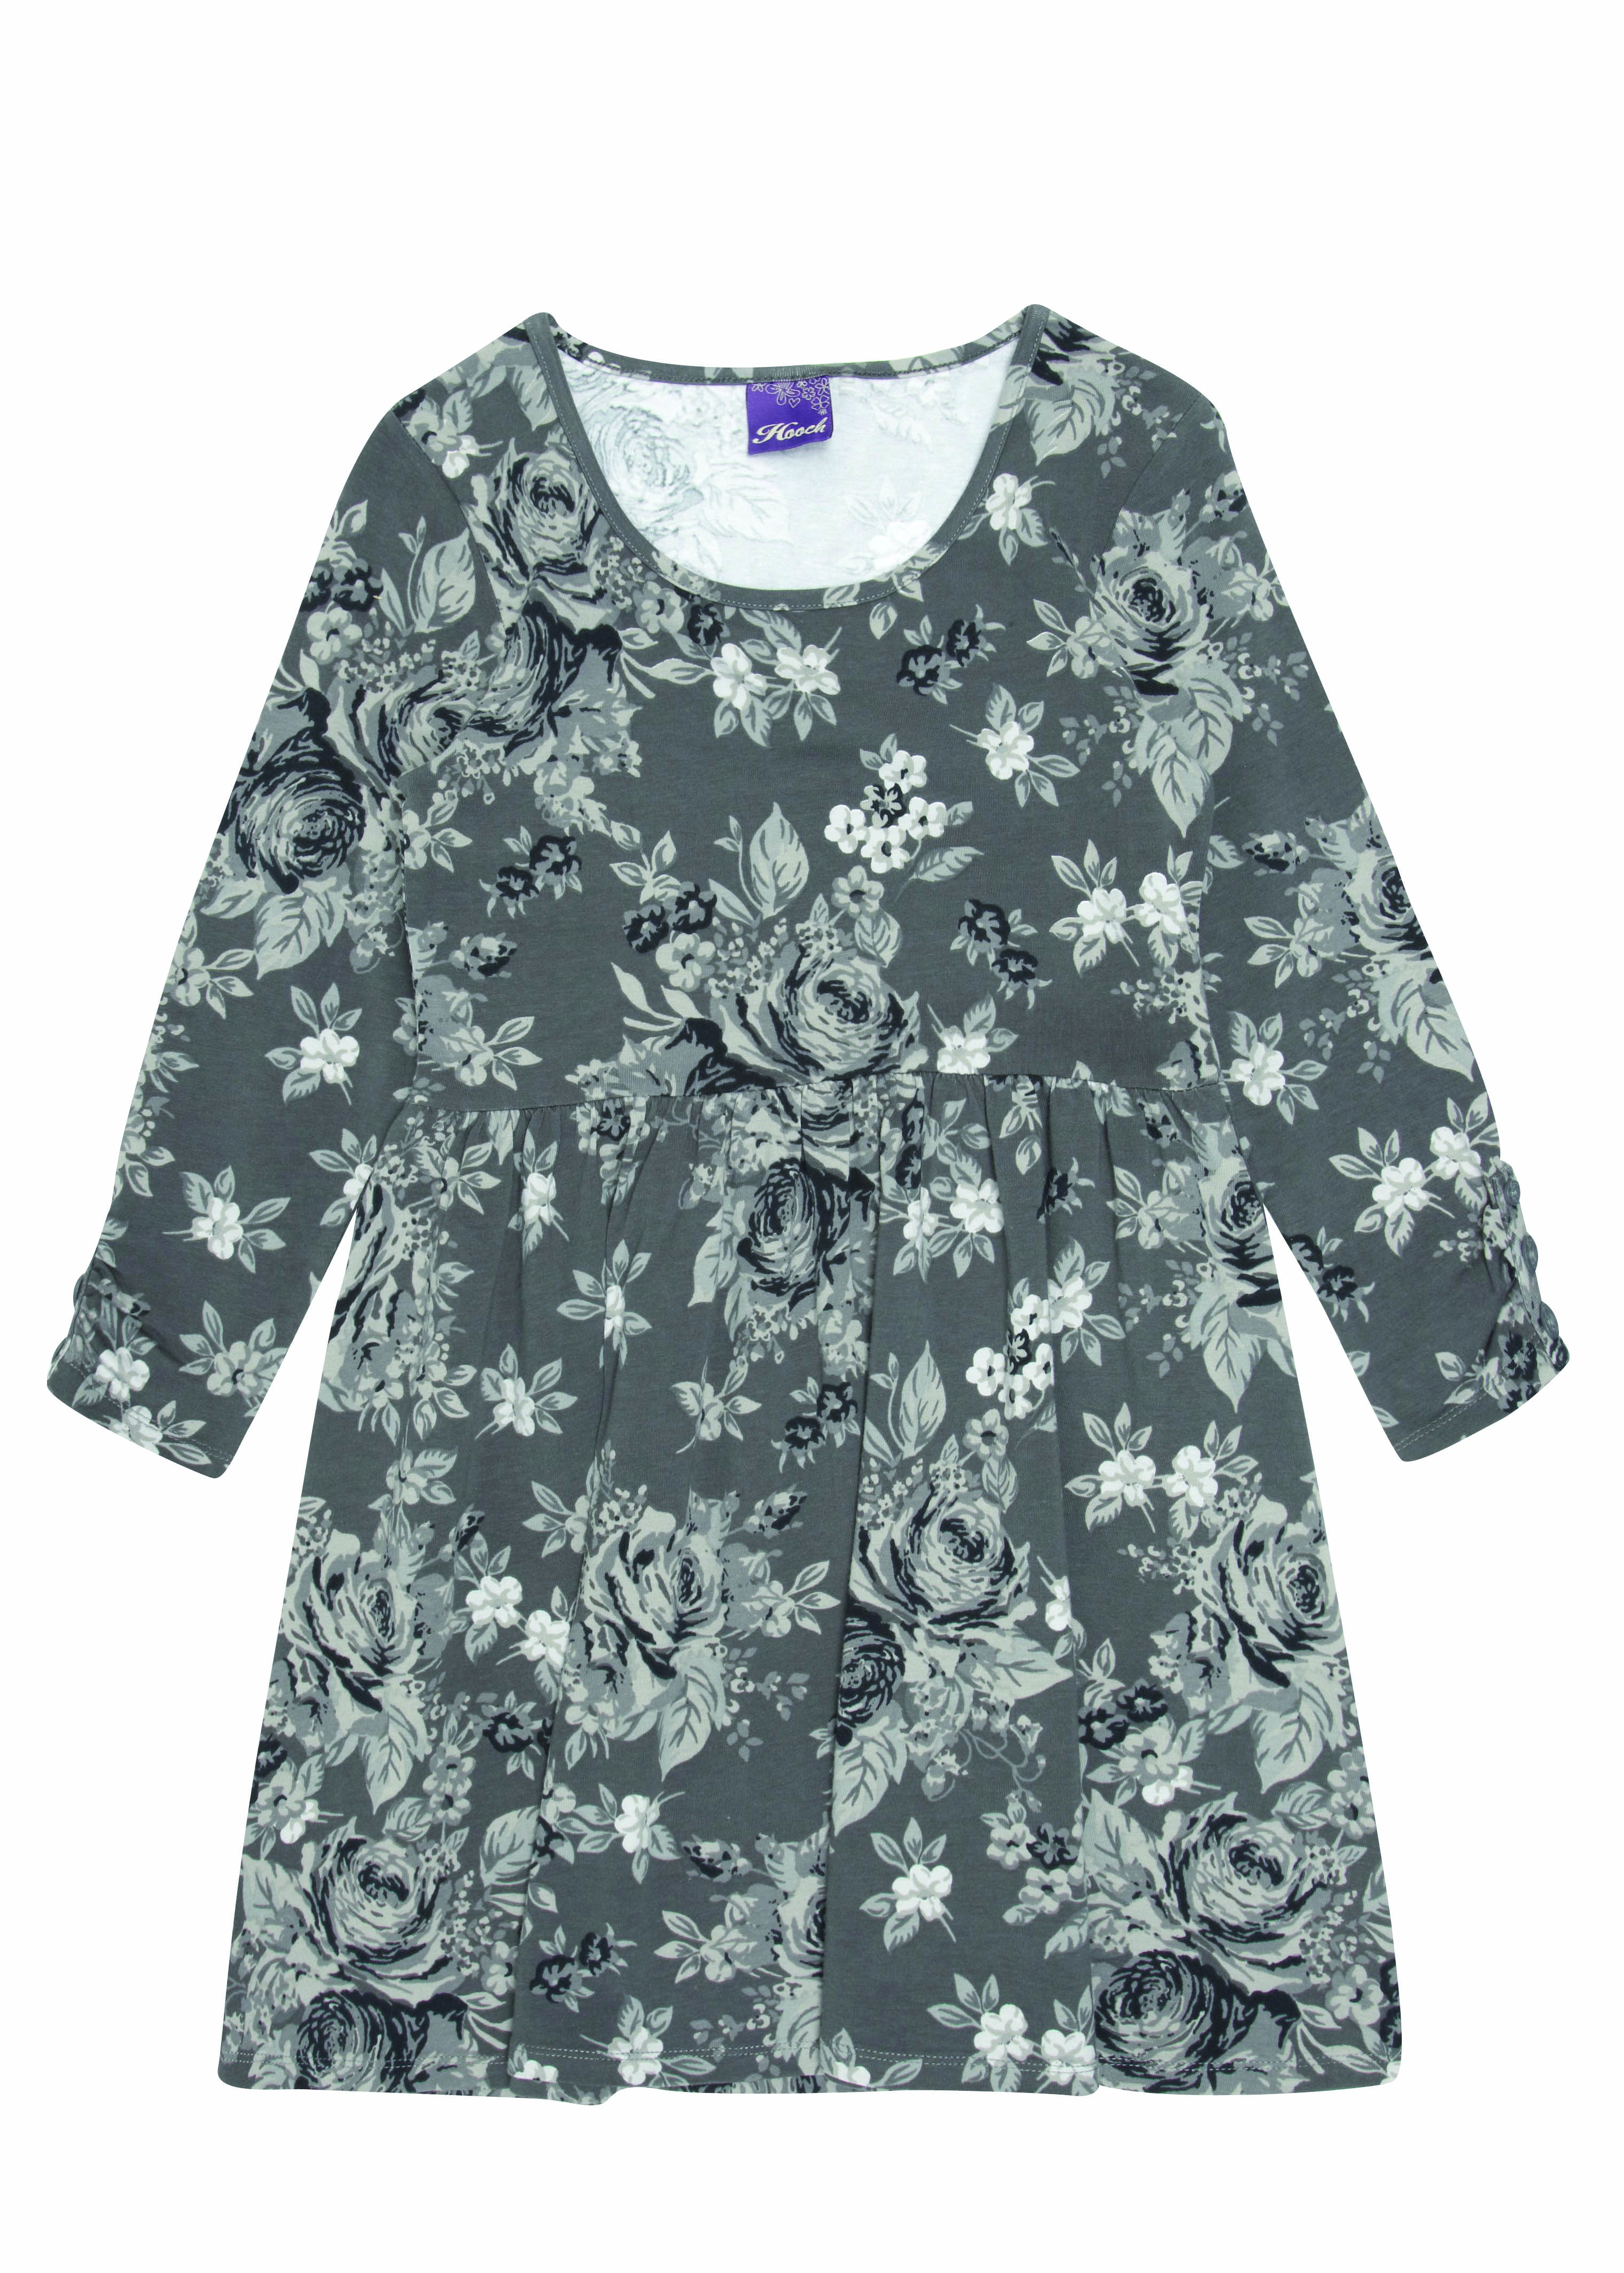 9 results for matalan mens dressing gown Save matalan mens dressing gown to get e-mail alerts and updates on your eBay Feed. Unfollow matalan mens dressing gown to .